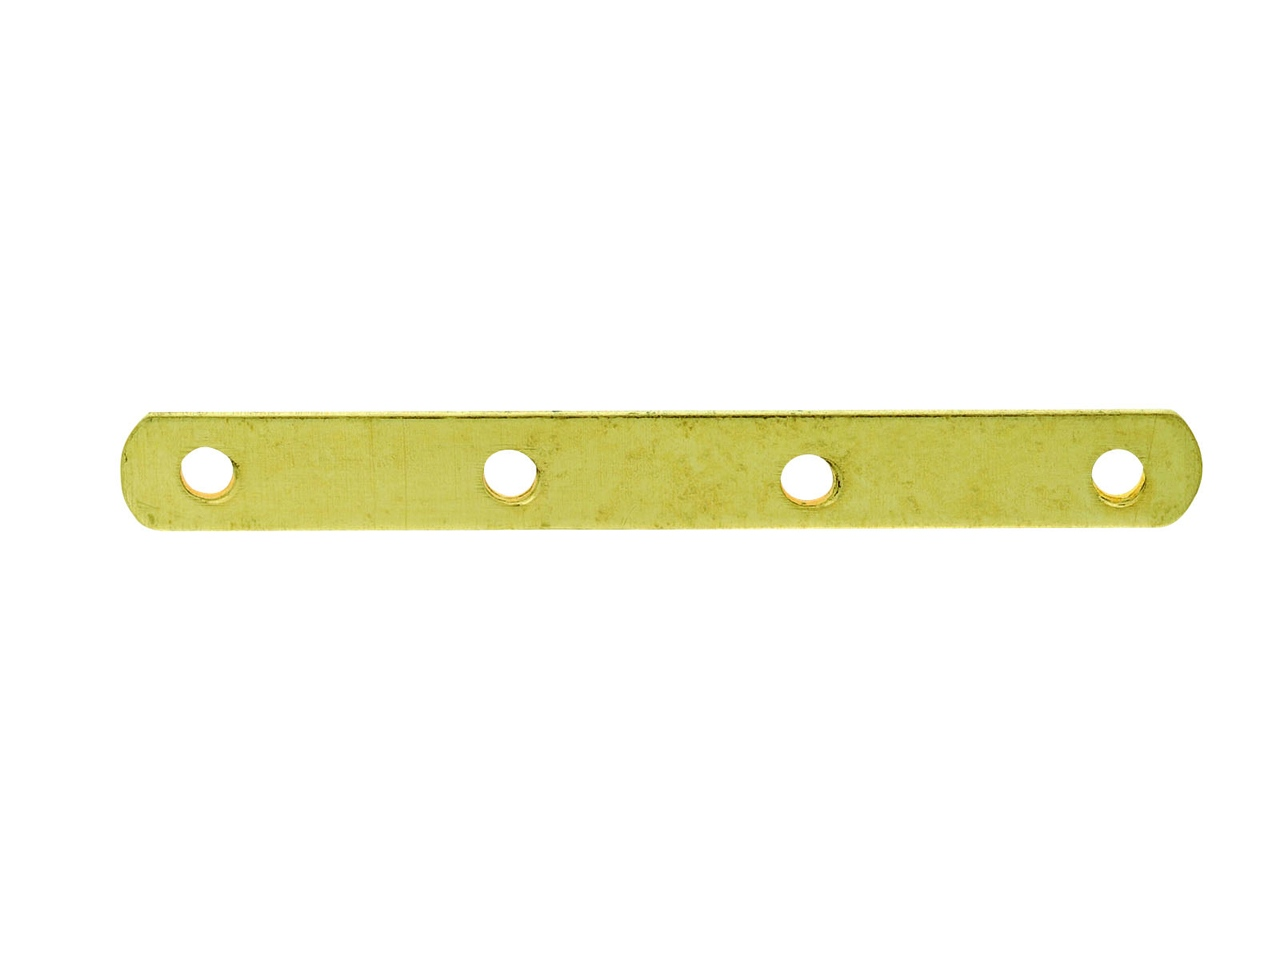 Intercalaire barrette 4 trous 22 mm, Or jaune 18k, n° 4 Bis